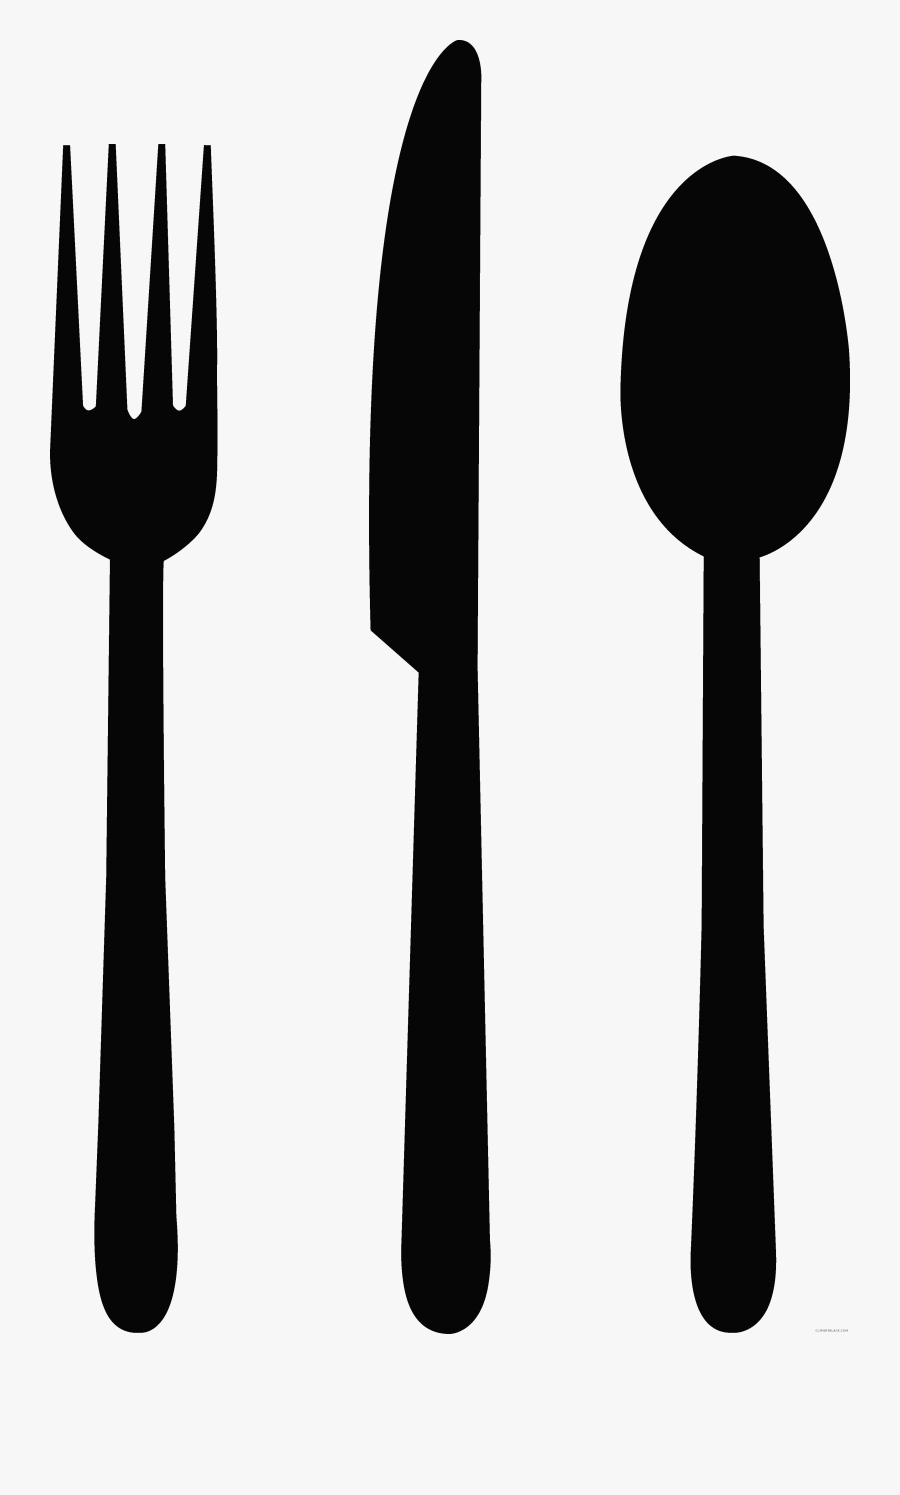 Knife Cutlery Fork Spoon Clip Art - Silhouette Fork And Knife Png, Transparent Clipart